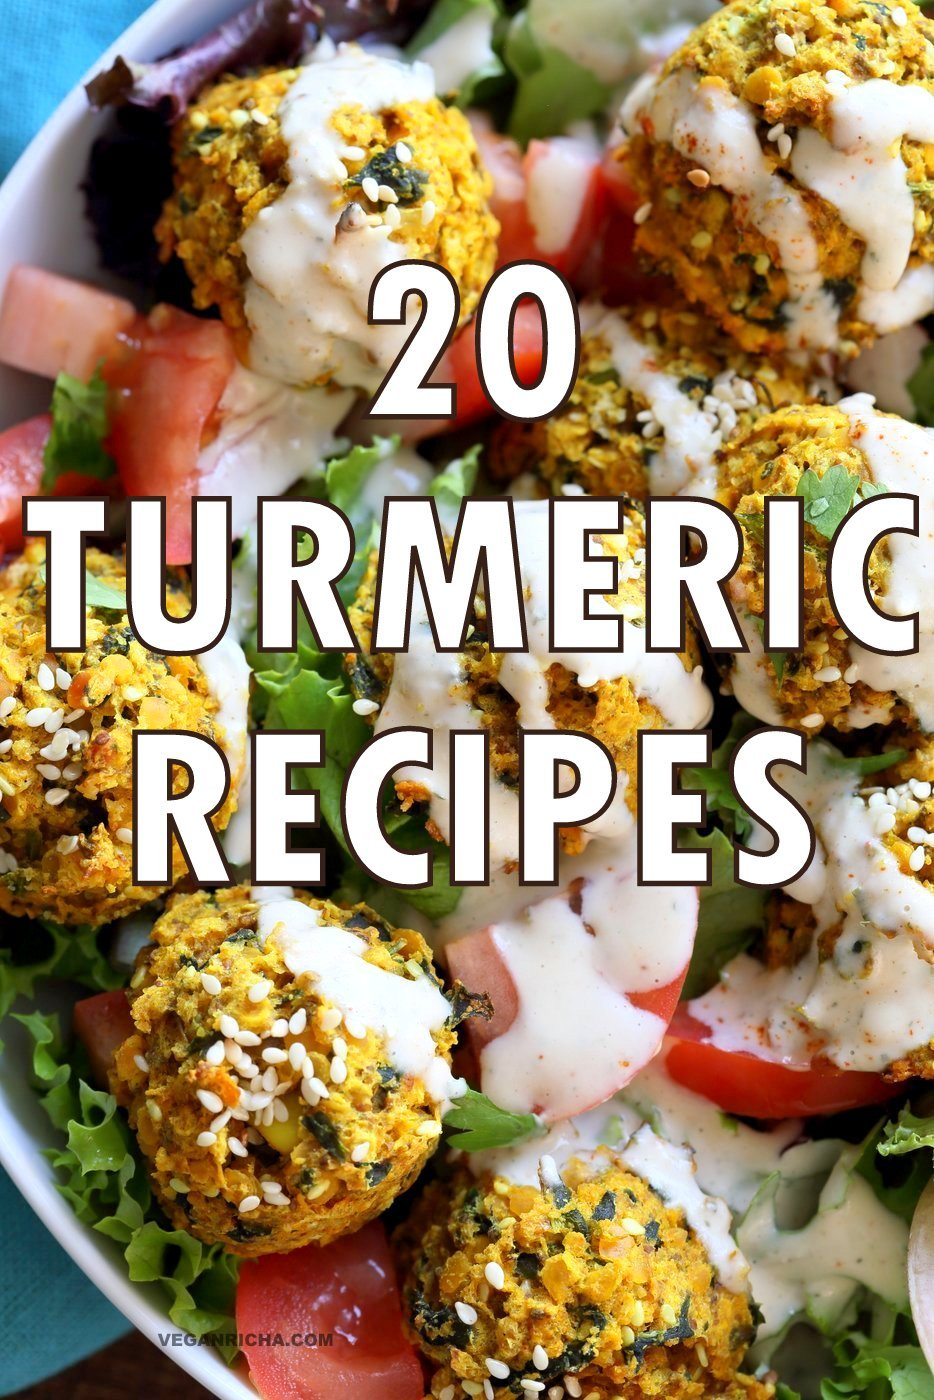 20 Recipes with Turmeric. Turmeric Cauliflower Rice, Turmeric Chocolate Marble Loaf, Golden Iced Tea, Turmeric Miso Soup, Turmeric brussels sprouts and more. Vegan Gluten-free Turmeric Recipes. Soy-free options. VeganRicha.com